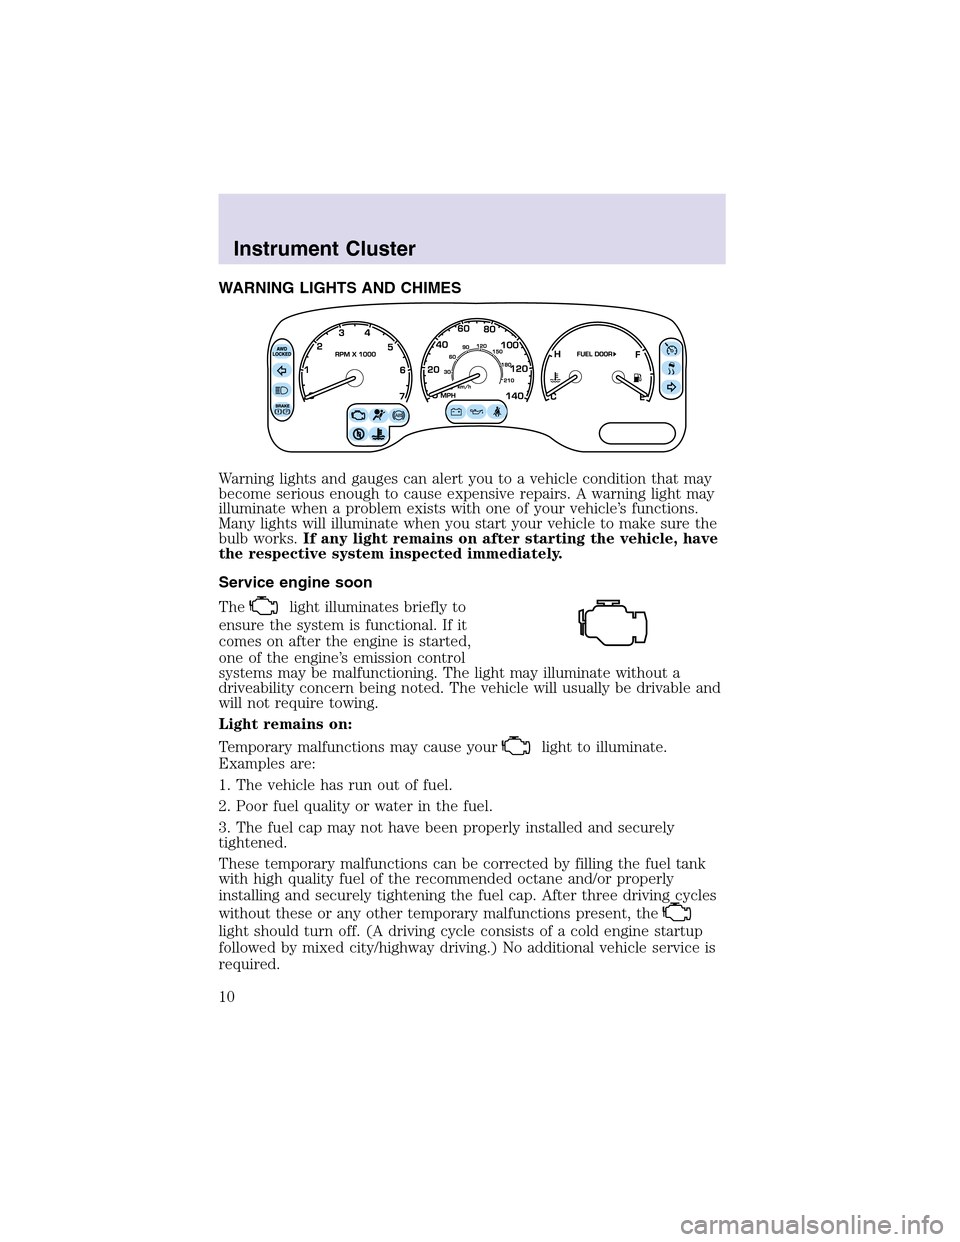 LINCOLN AVIATOR 2003  Owners Manual, Page 10